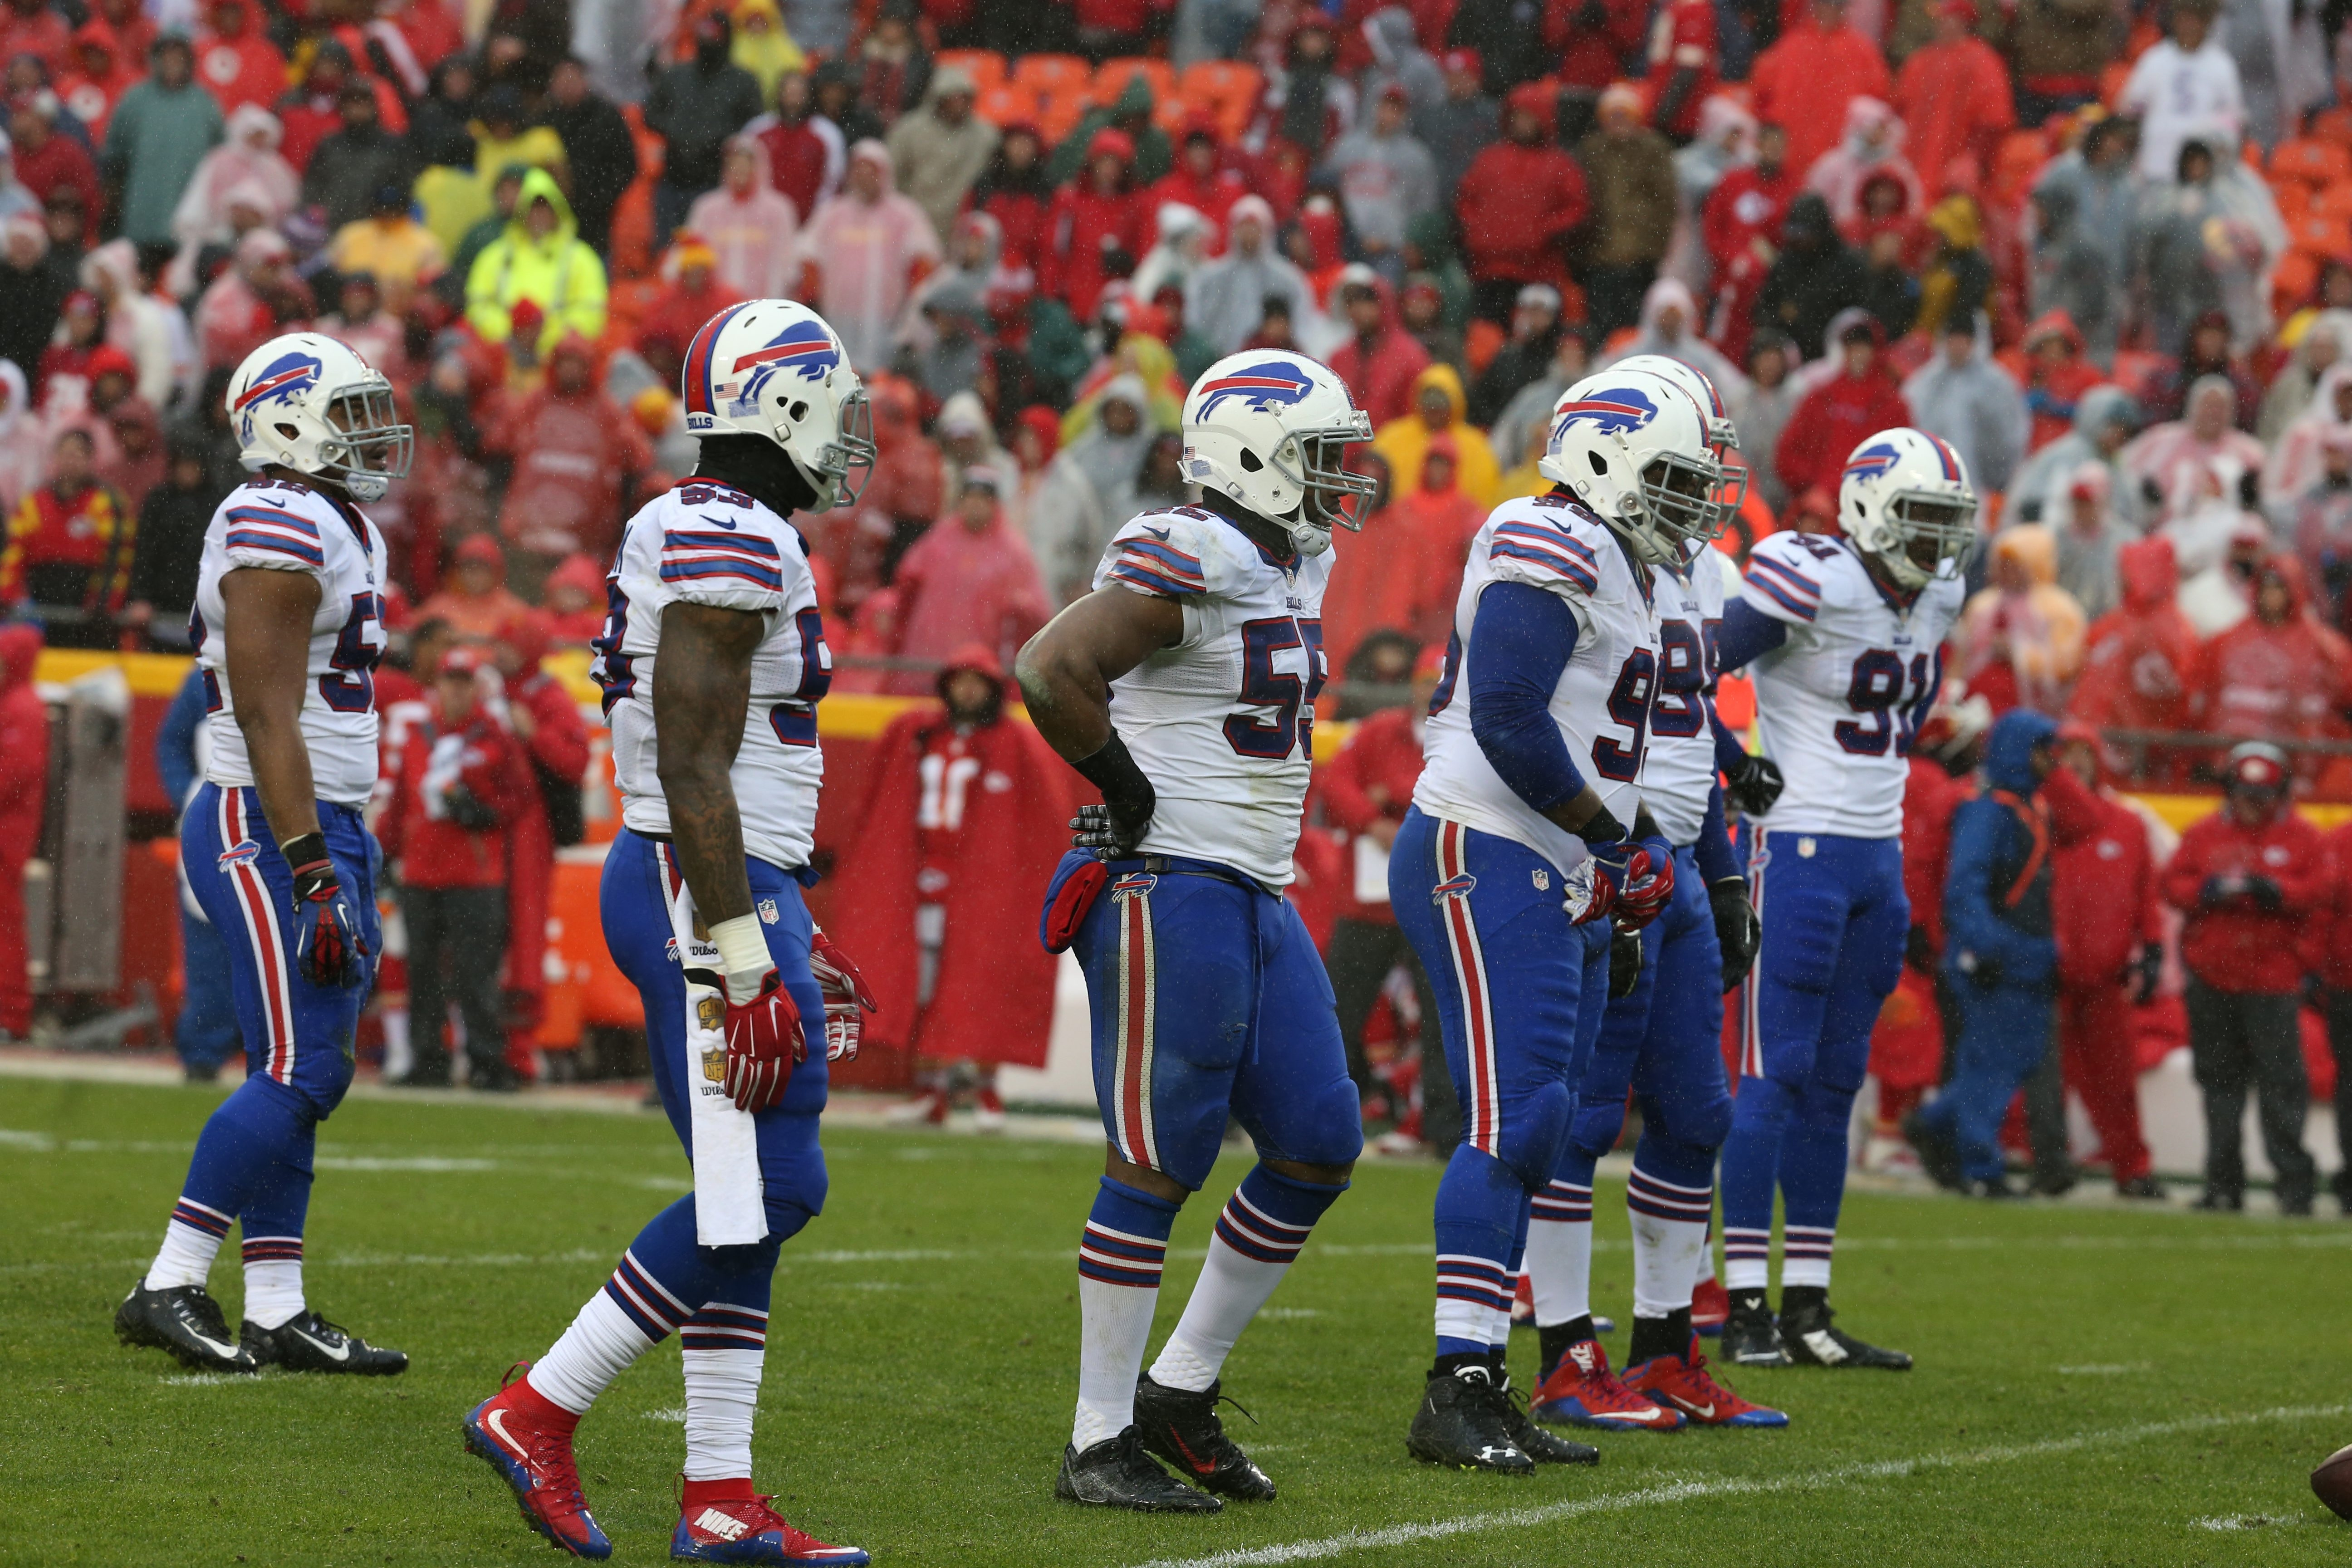 The Buffalo Bills' defensive line took a step backward under first-year coach Rex Ryan in 2015, leading to the departure of Mario Williams.